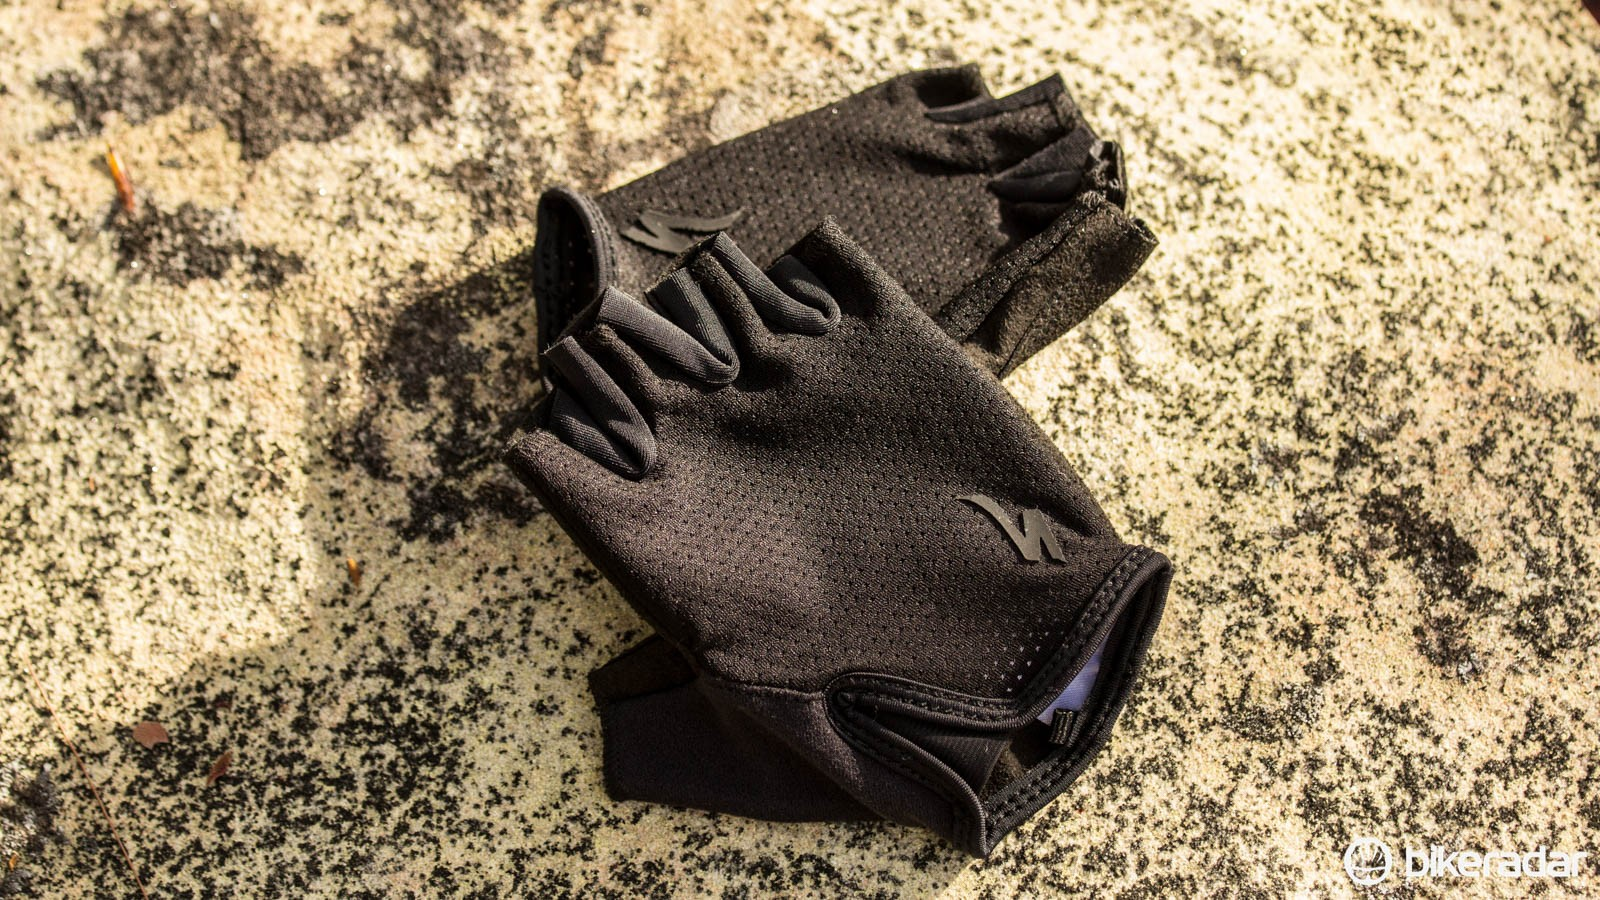 The Specialized Grail gloves are claimed to have taken three years in development, including blood circulation testing